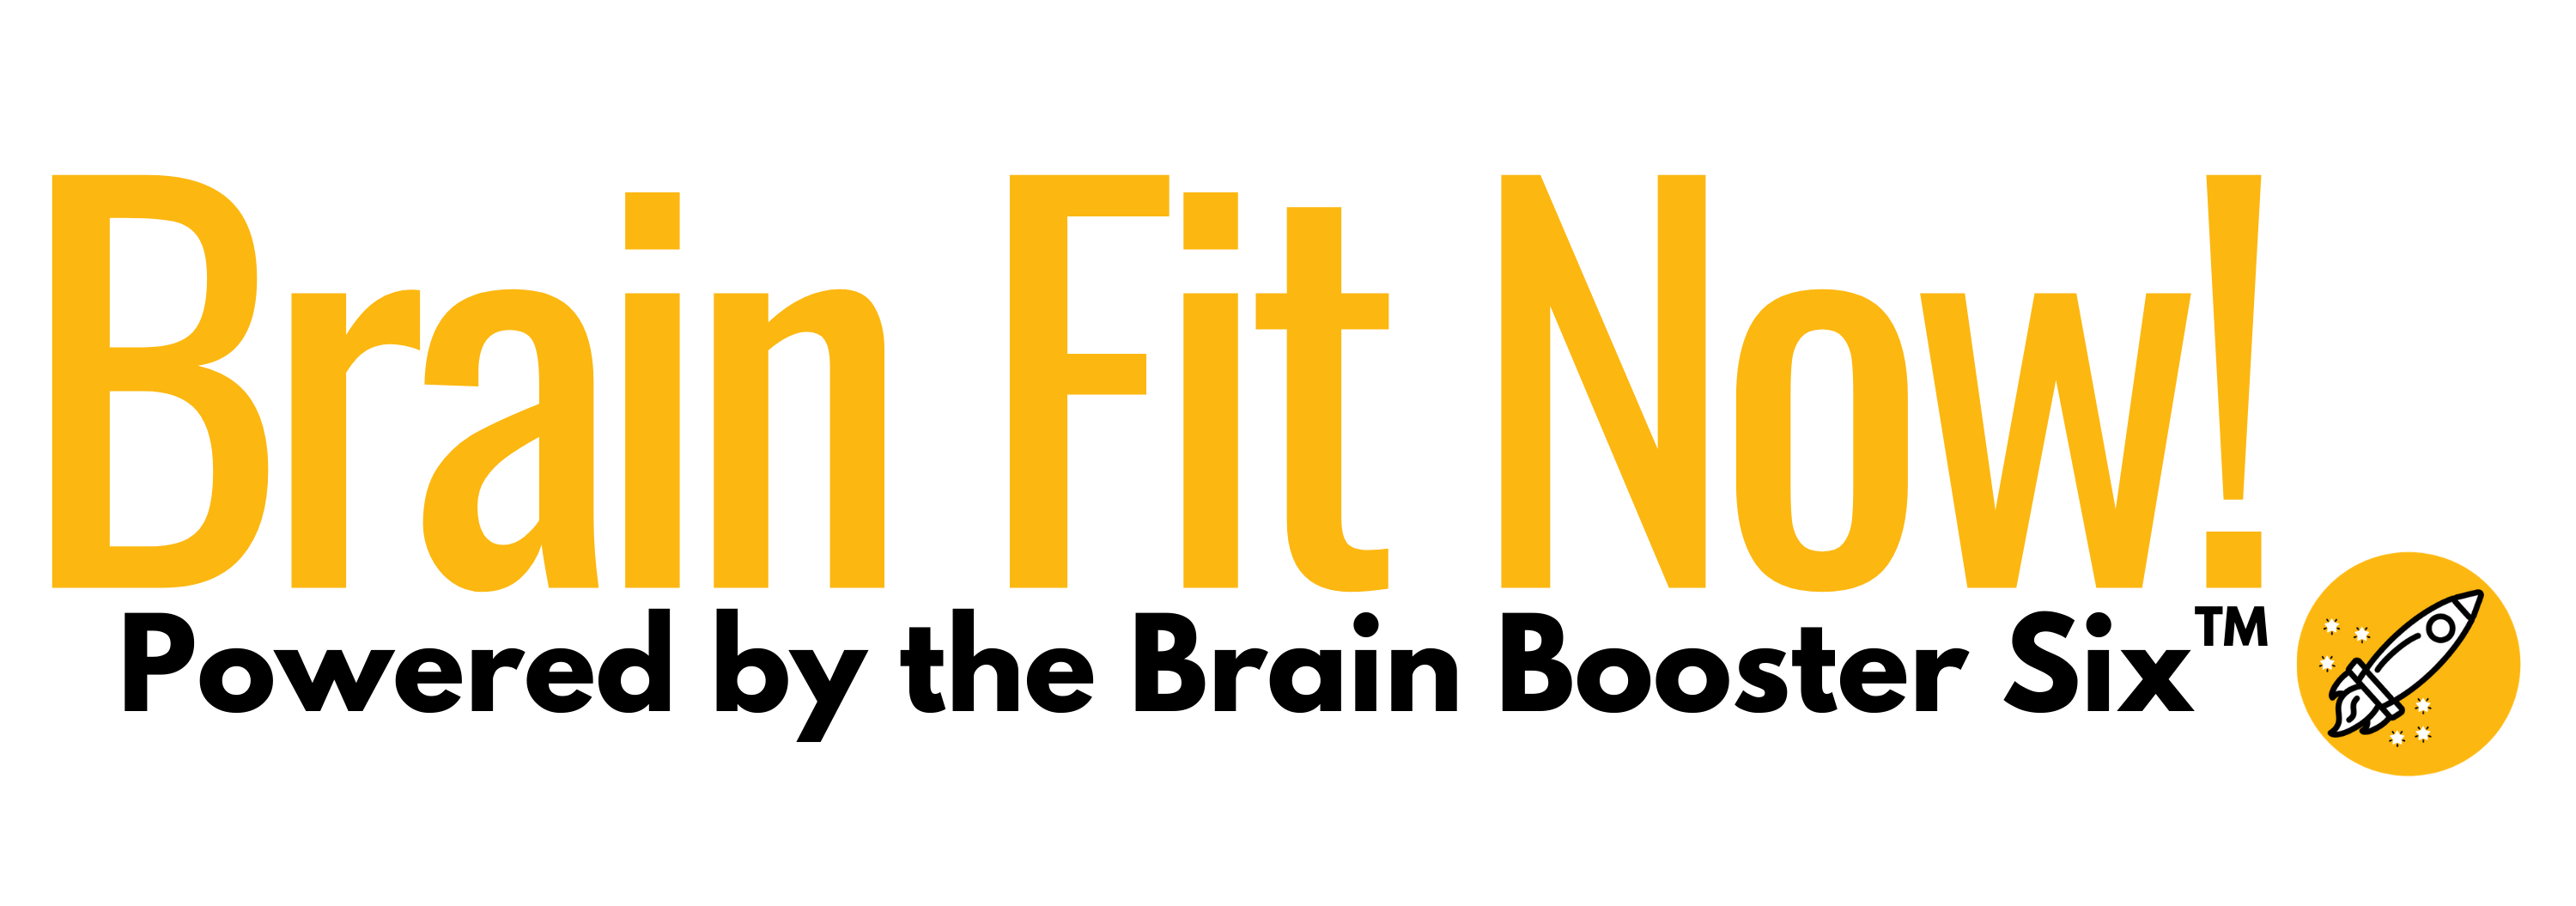 Brain Fit Now!